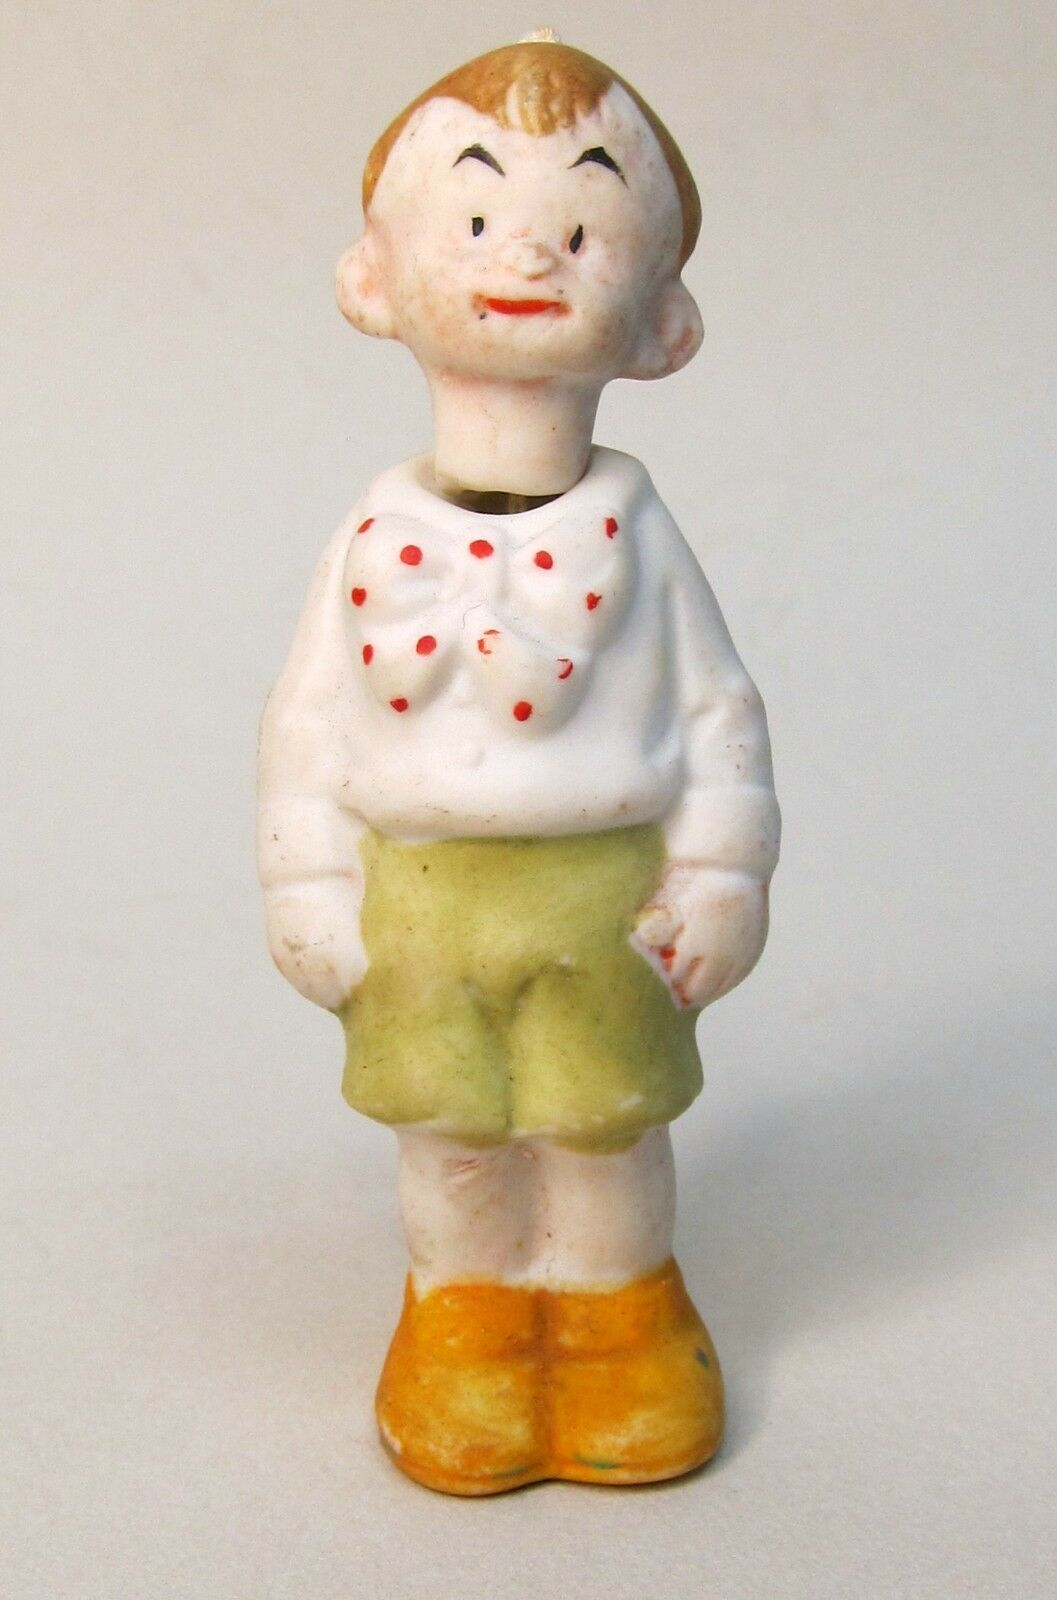 Sidney Smith's CHESTER GUMP c. 1930 German bisque comic character nodder